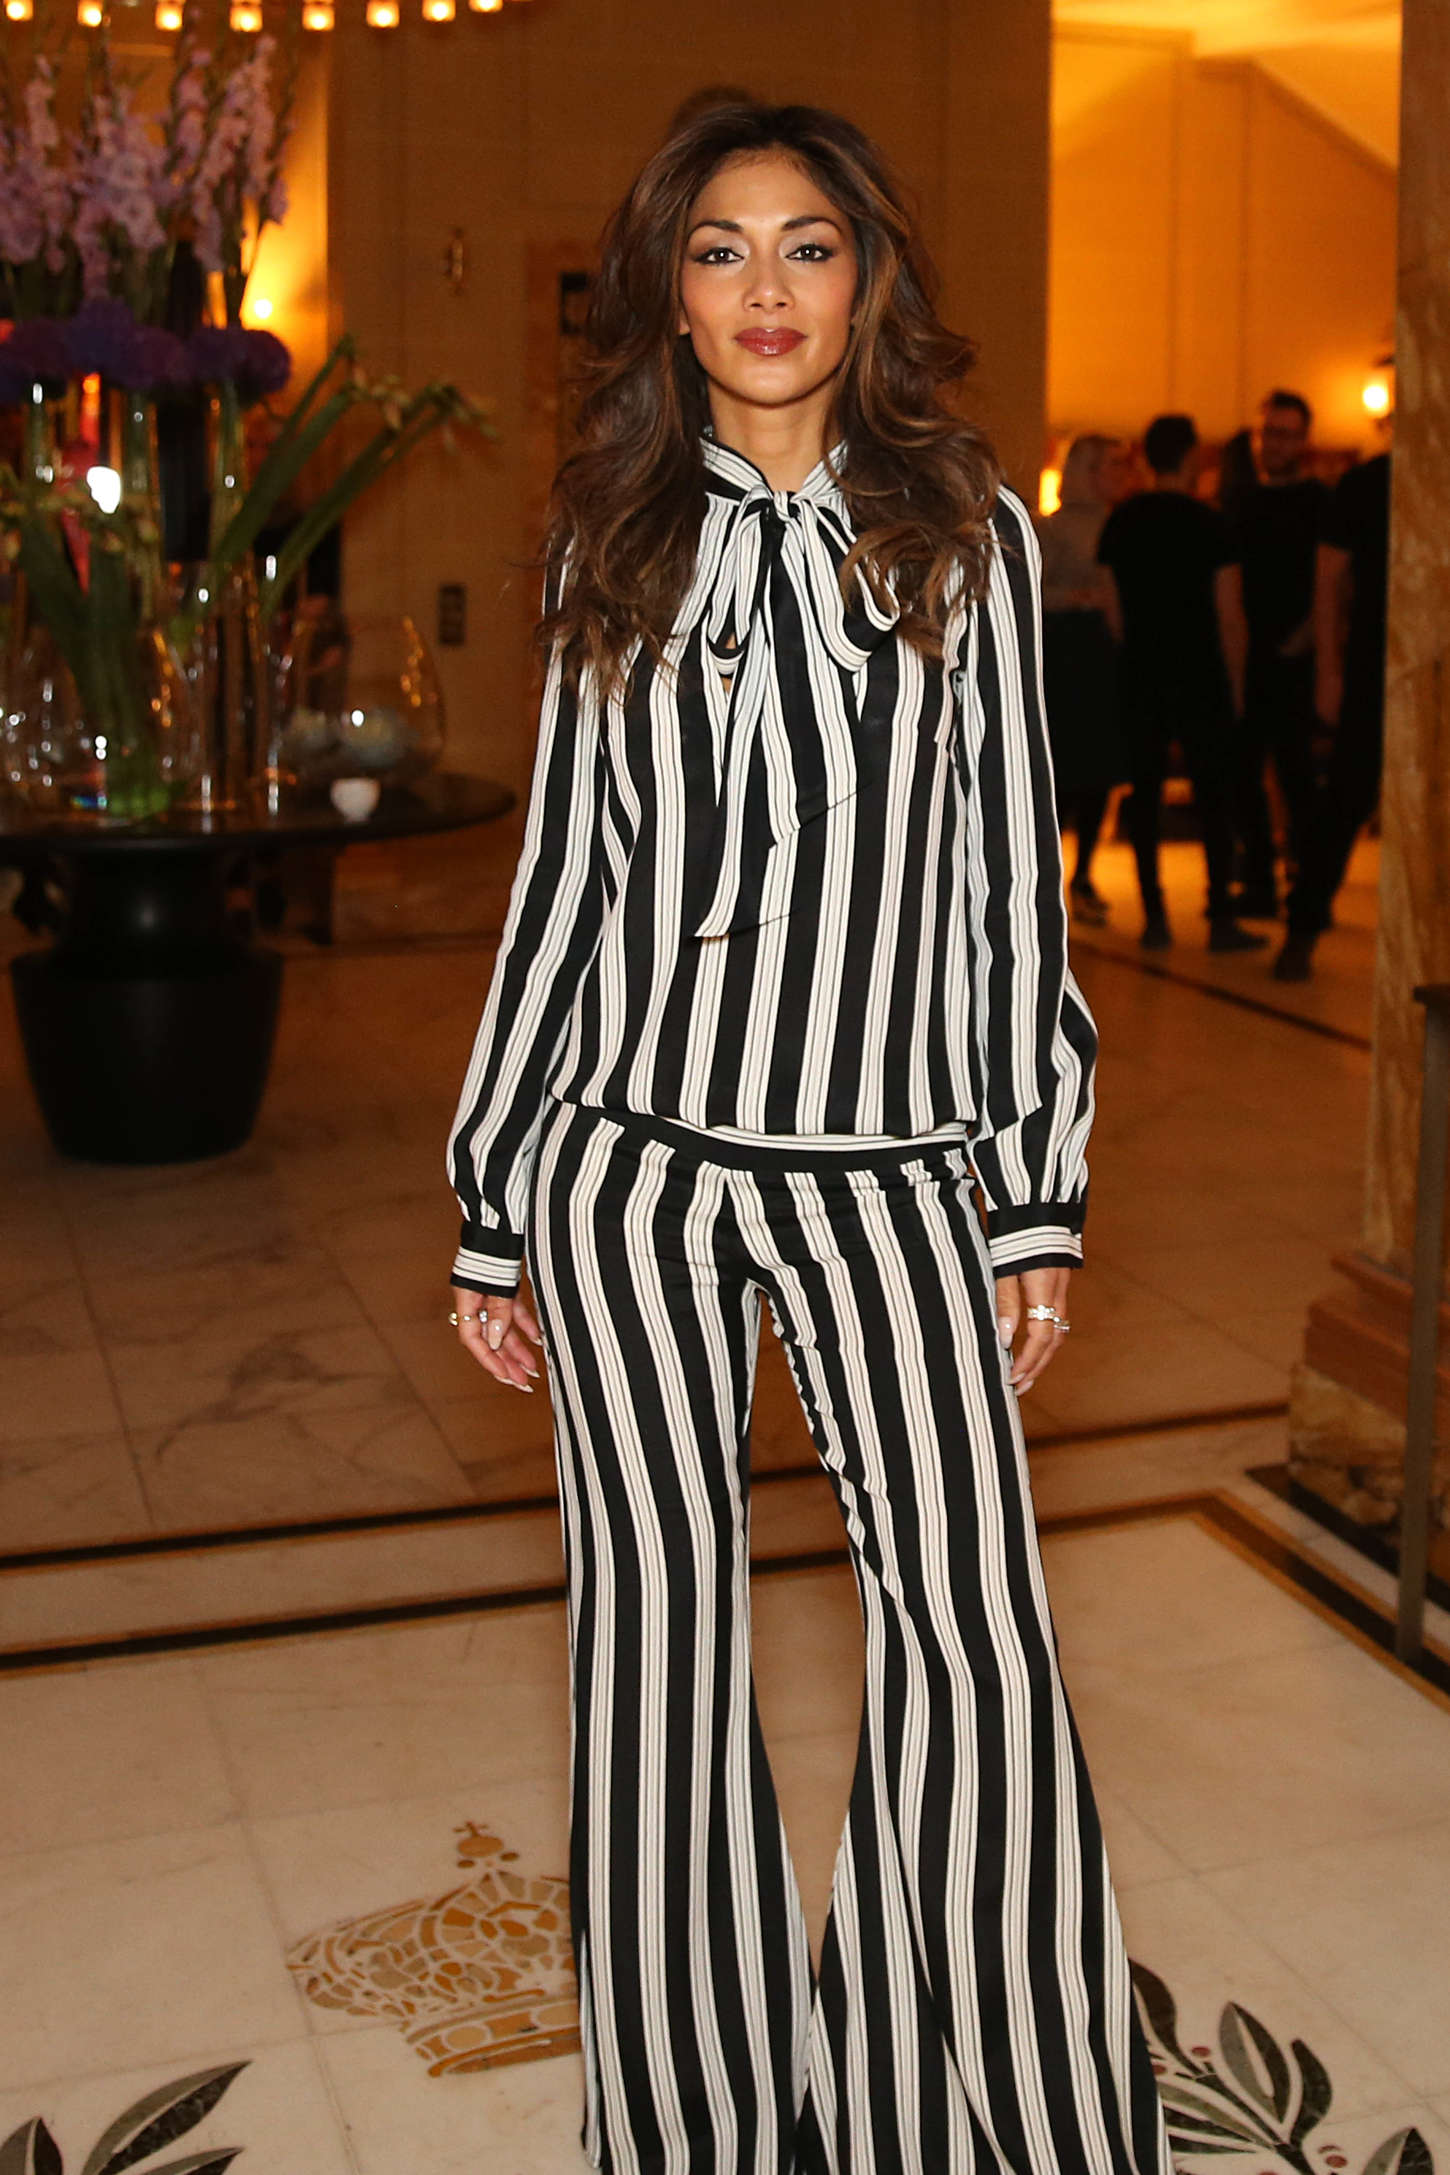 Nicole Scherzinger - Performs Live at the Cafe Royal Hotel in London